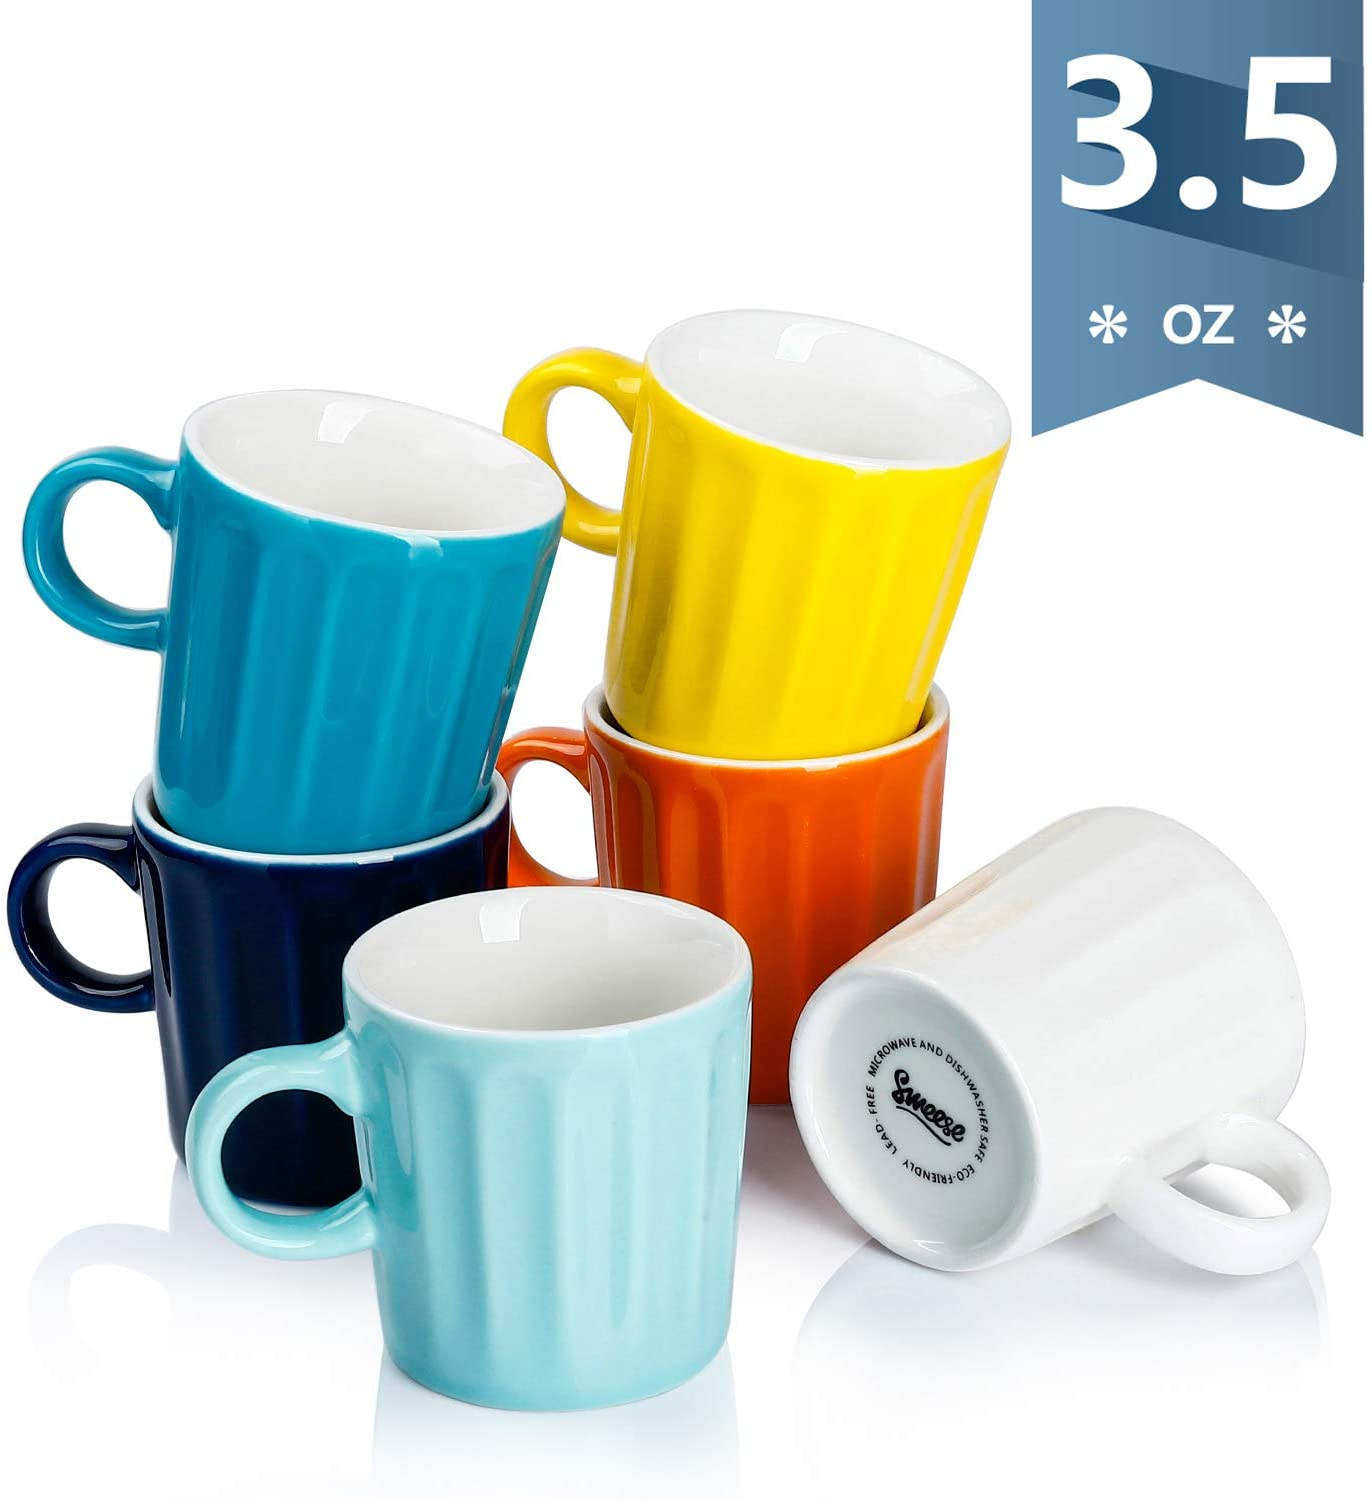 410 002 Porcelain Fluted Espresso Cups 3 5 Ounce Set Of 6 Hot Assorted Walmart Com Walmart Com